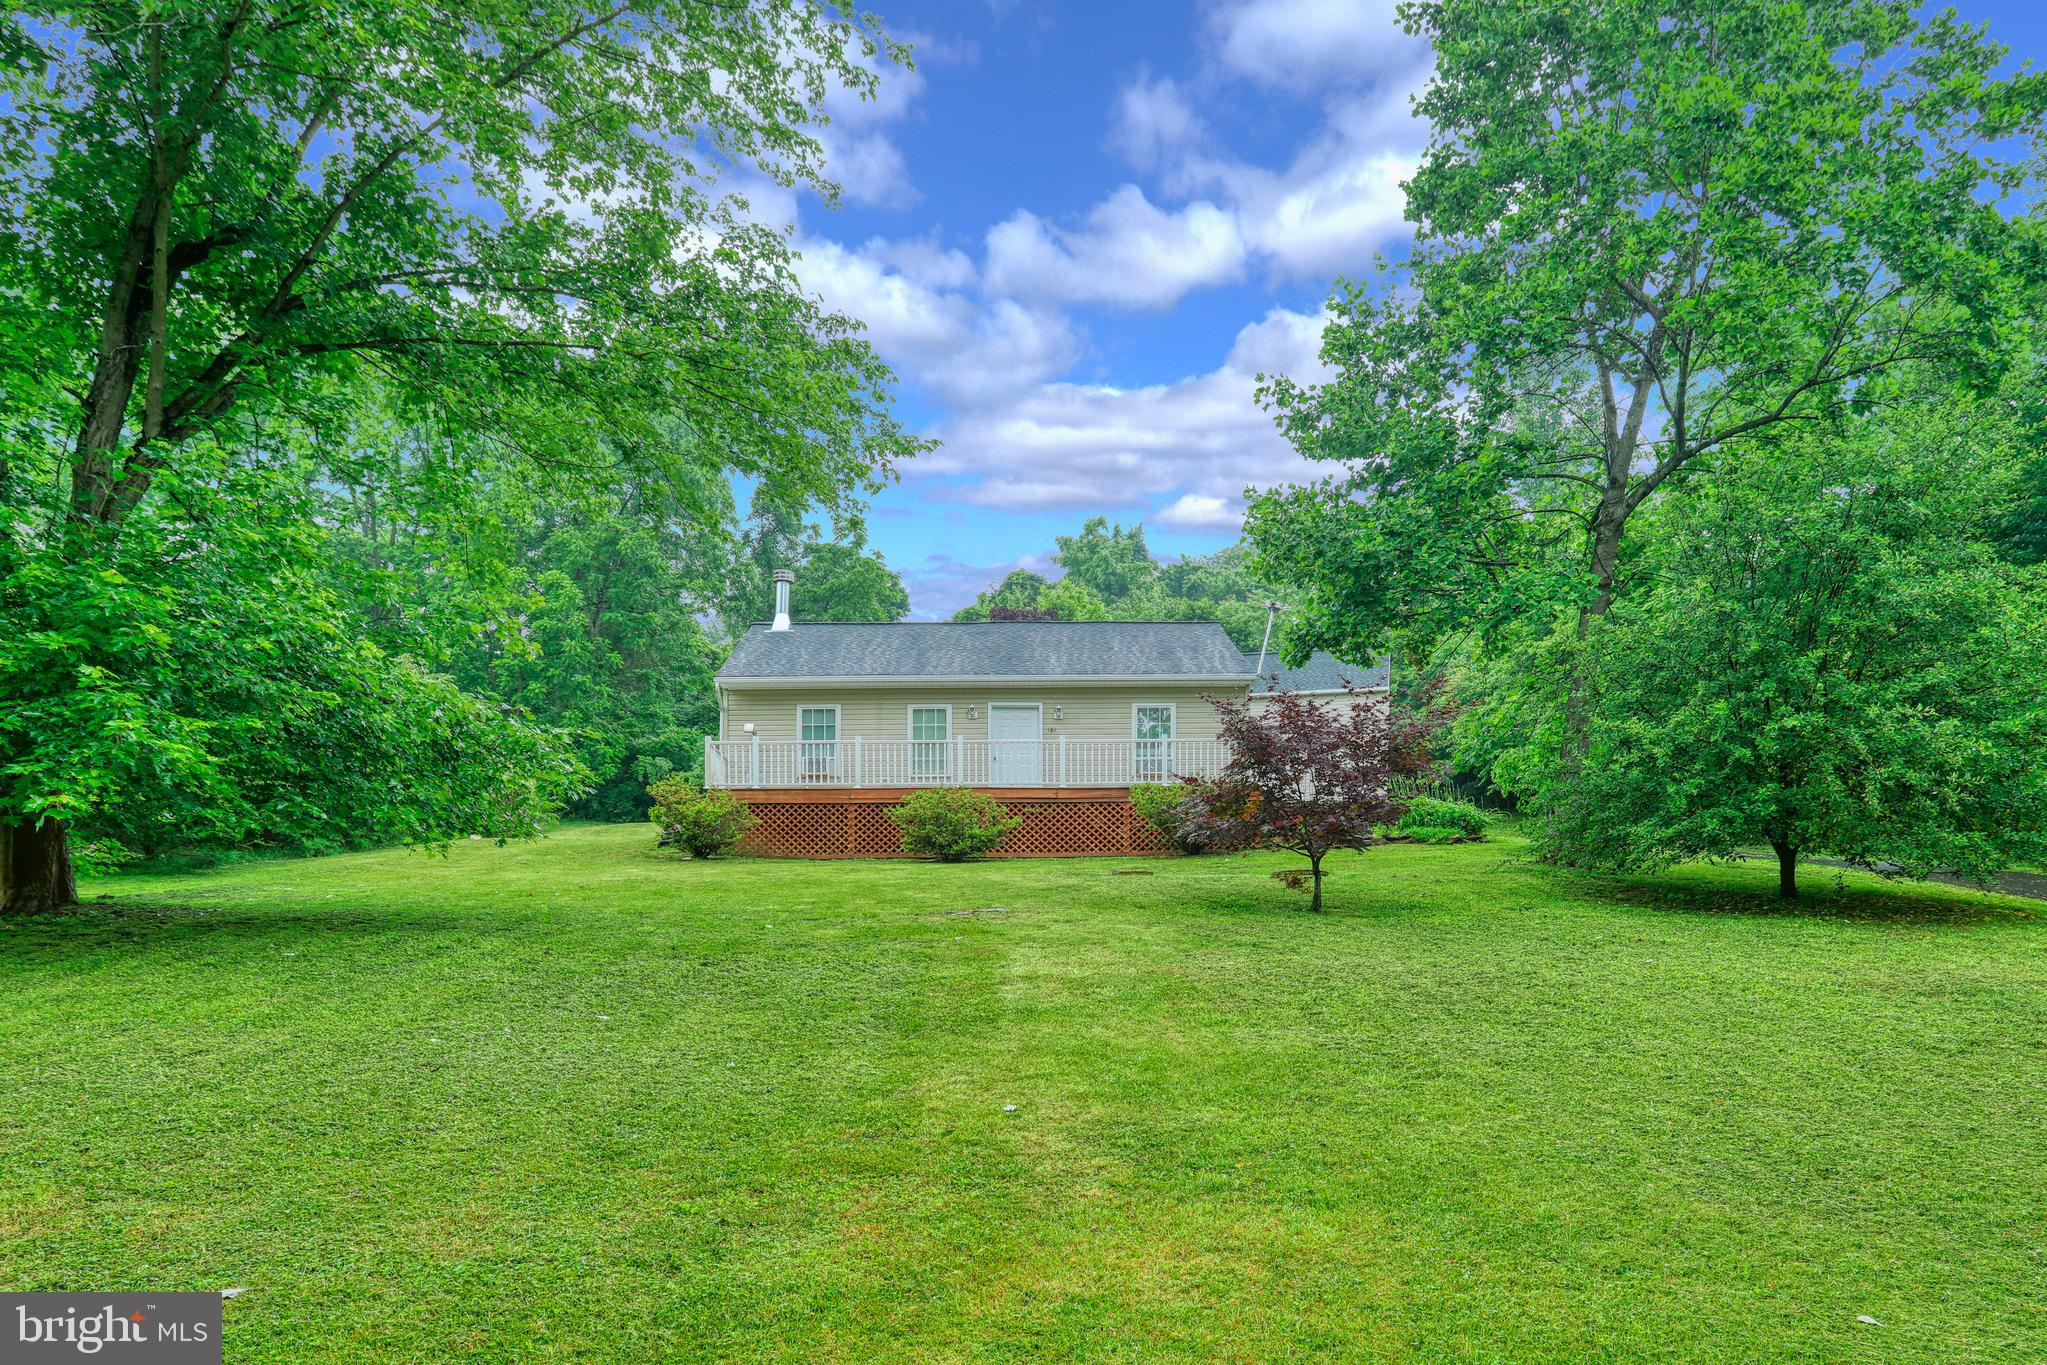 161 WENZEL ROAD, AIRVILLE, PA 17302